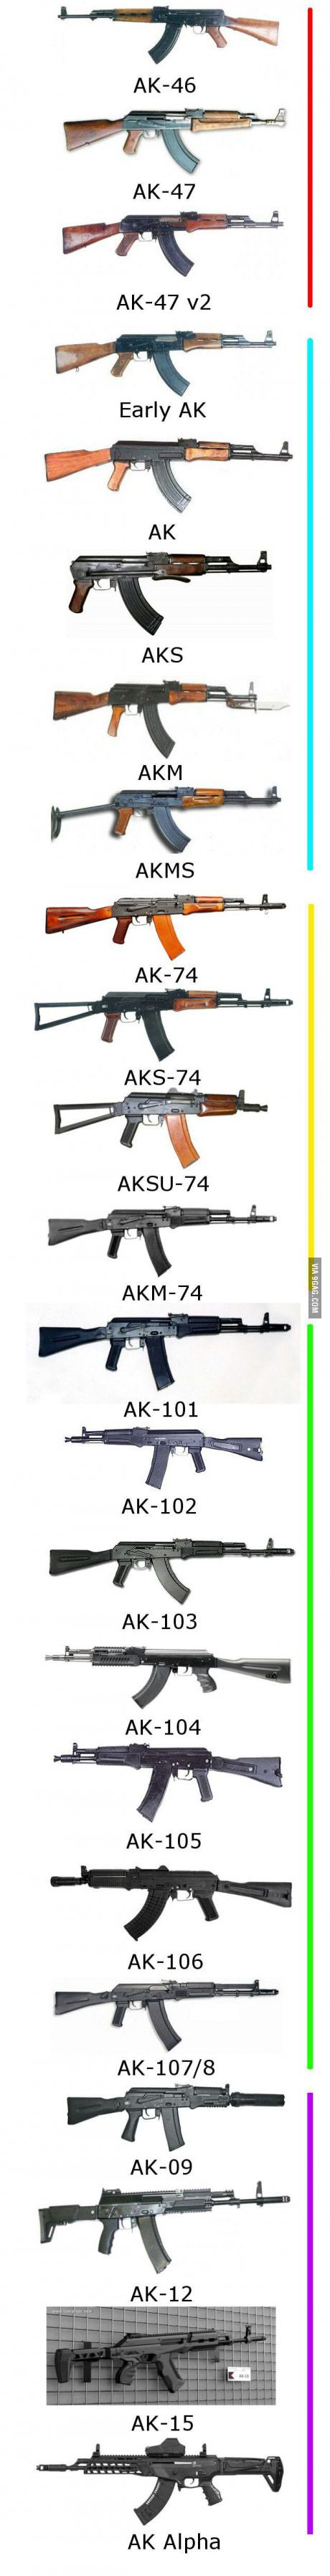 "Not only ""AK-47"" ....my personal favorite the AK 15"